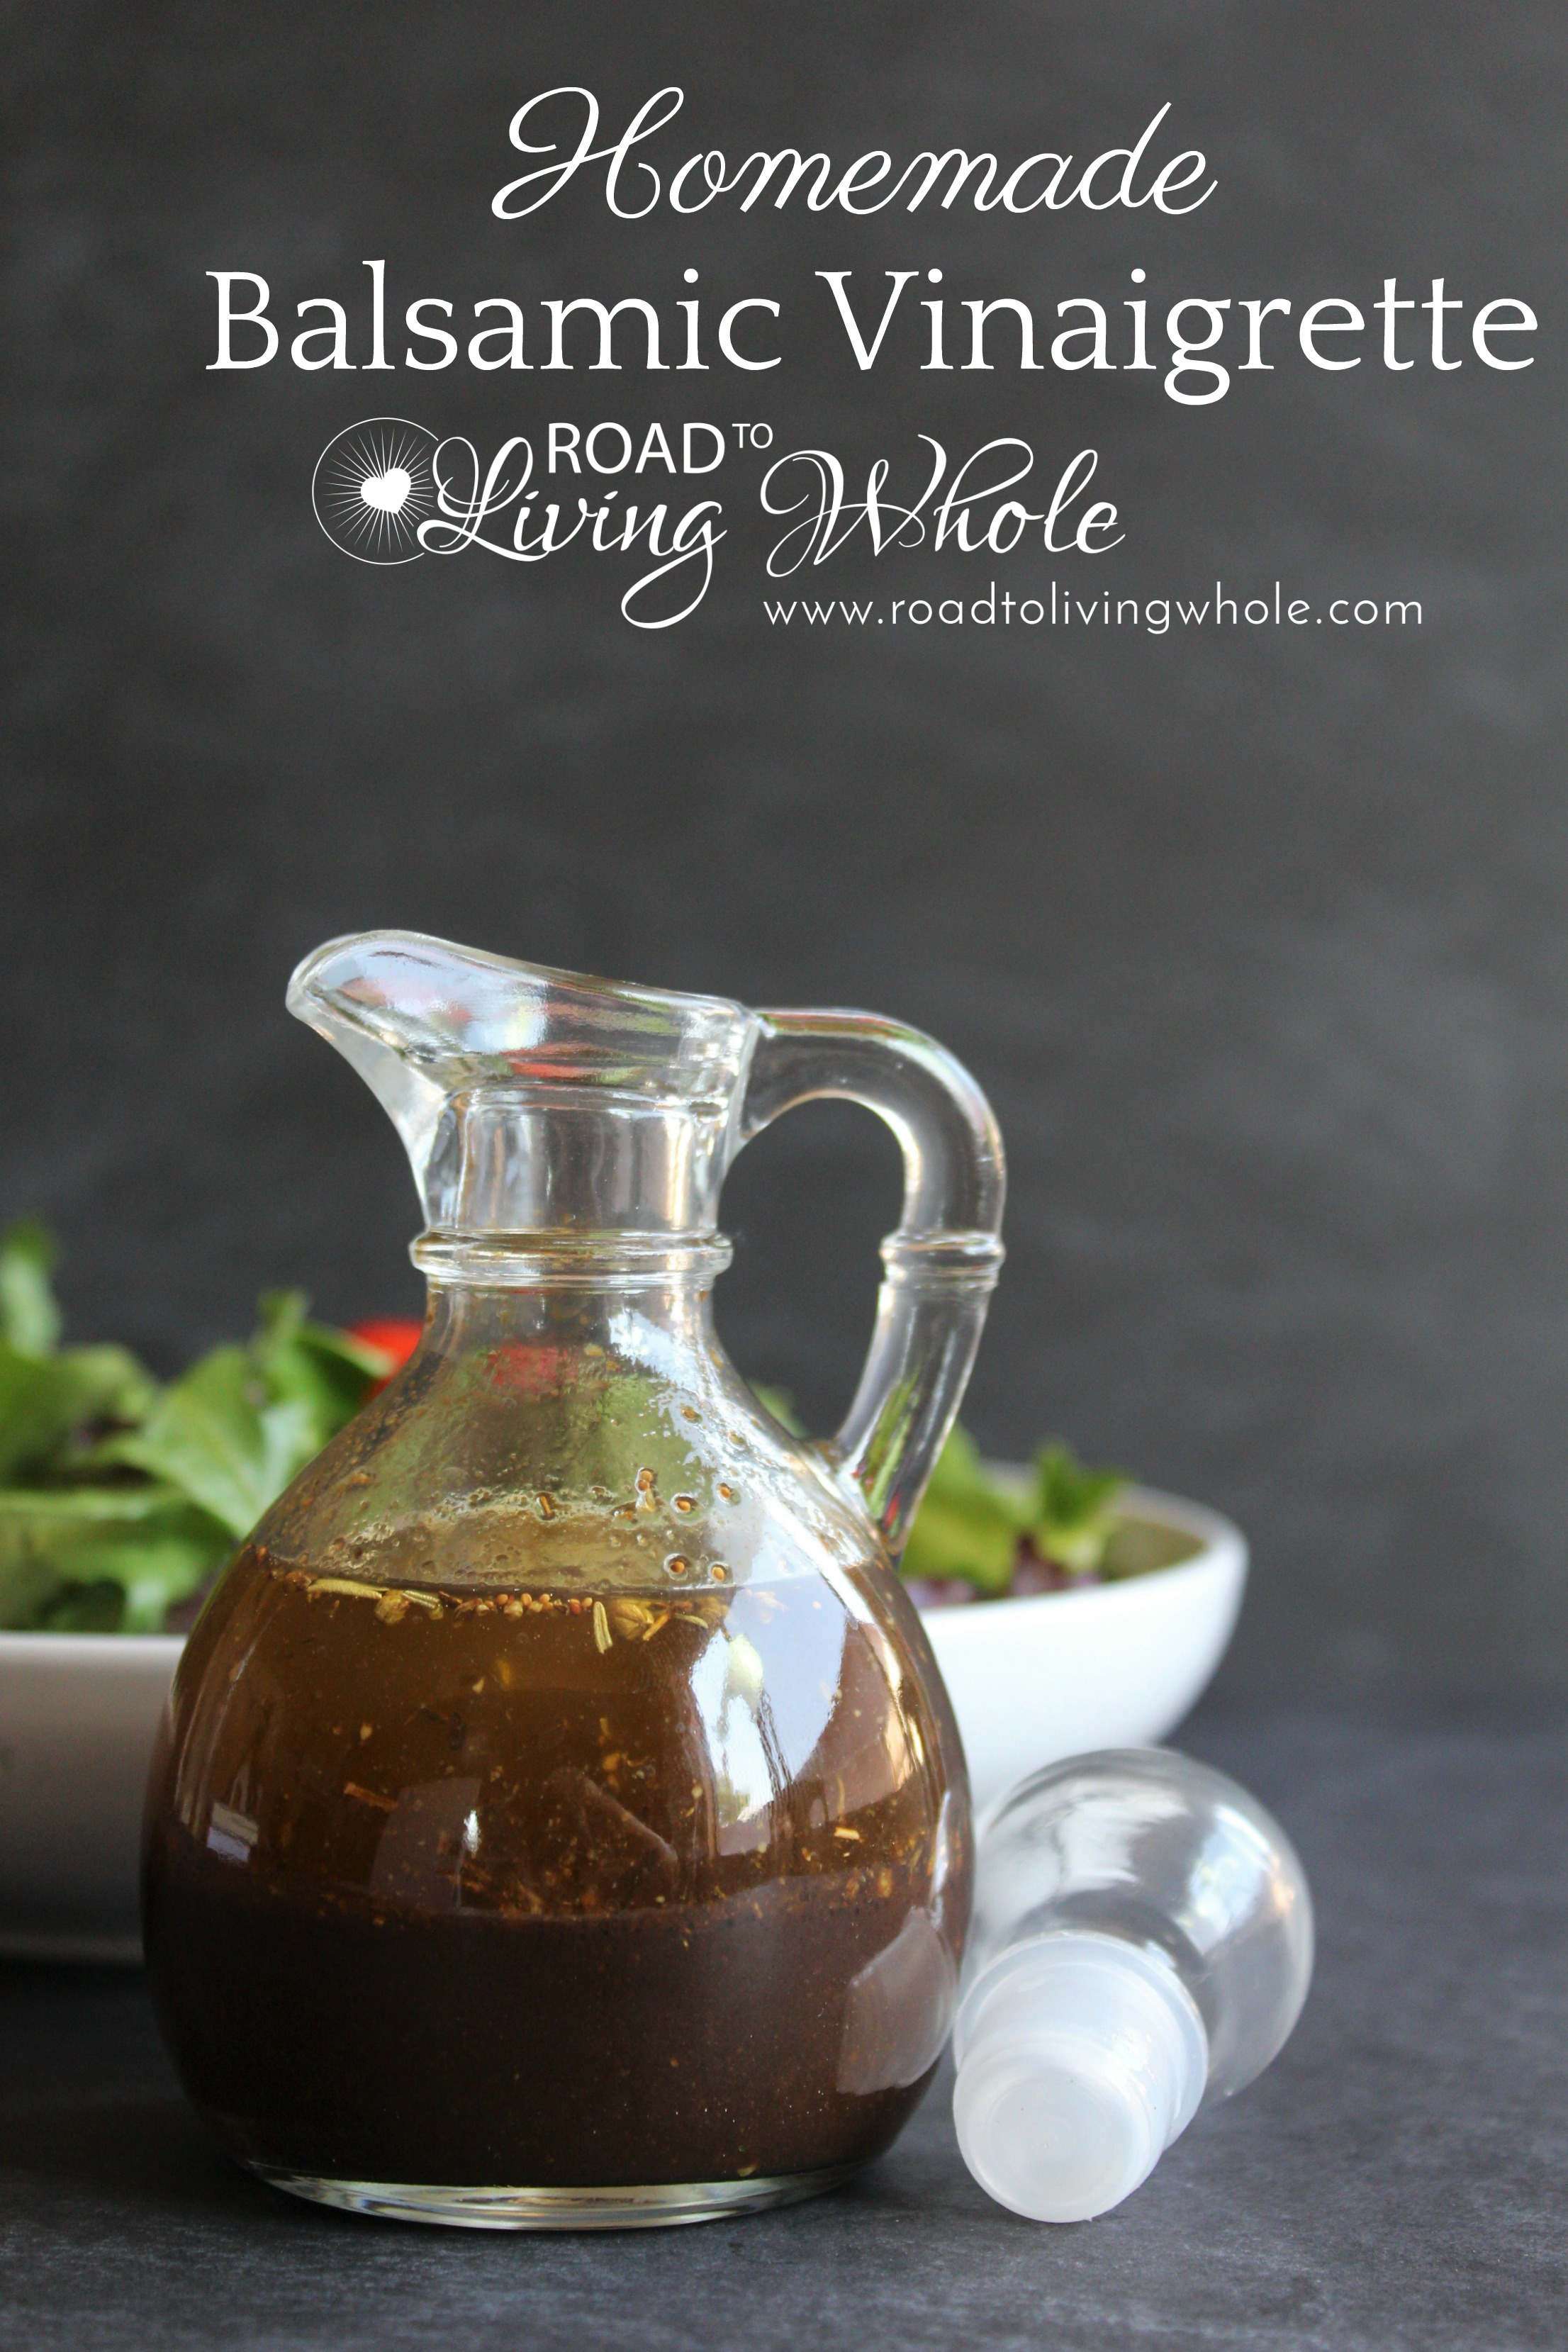 Balsamic Vinaigrette Dressing Recipe